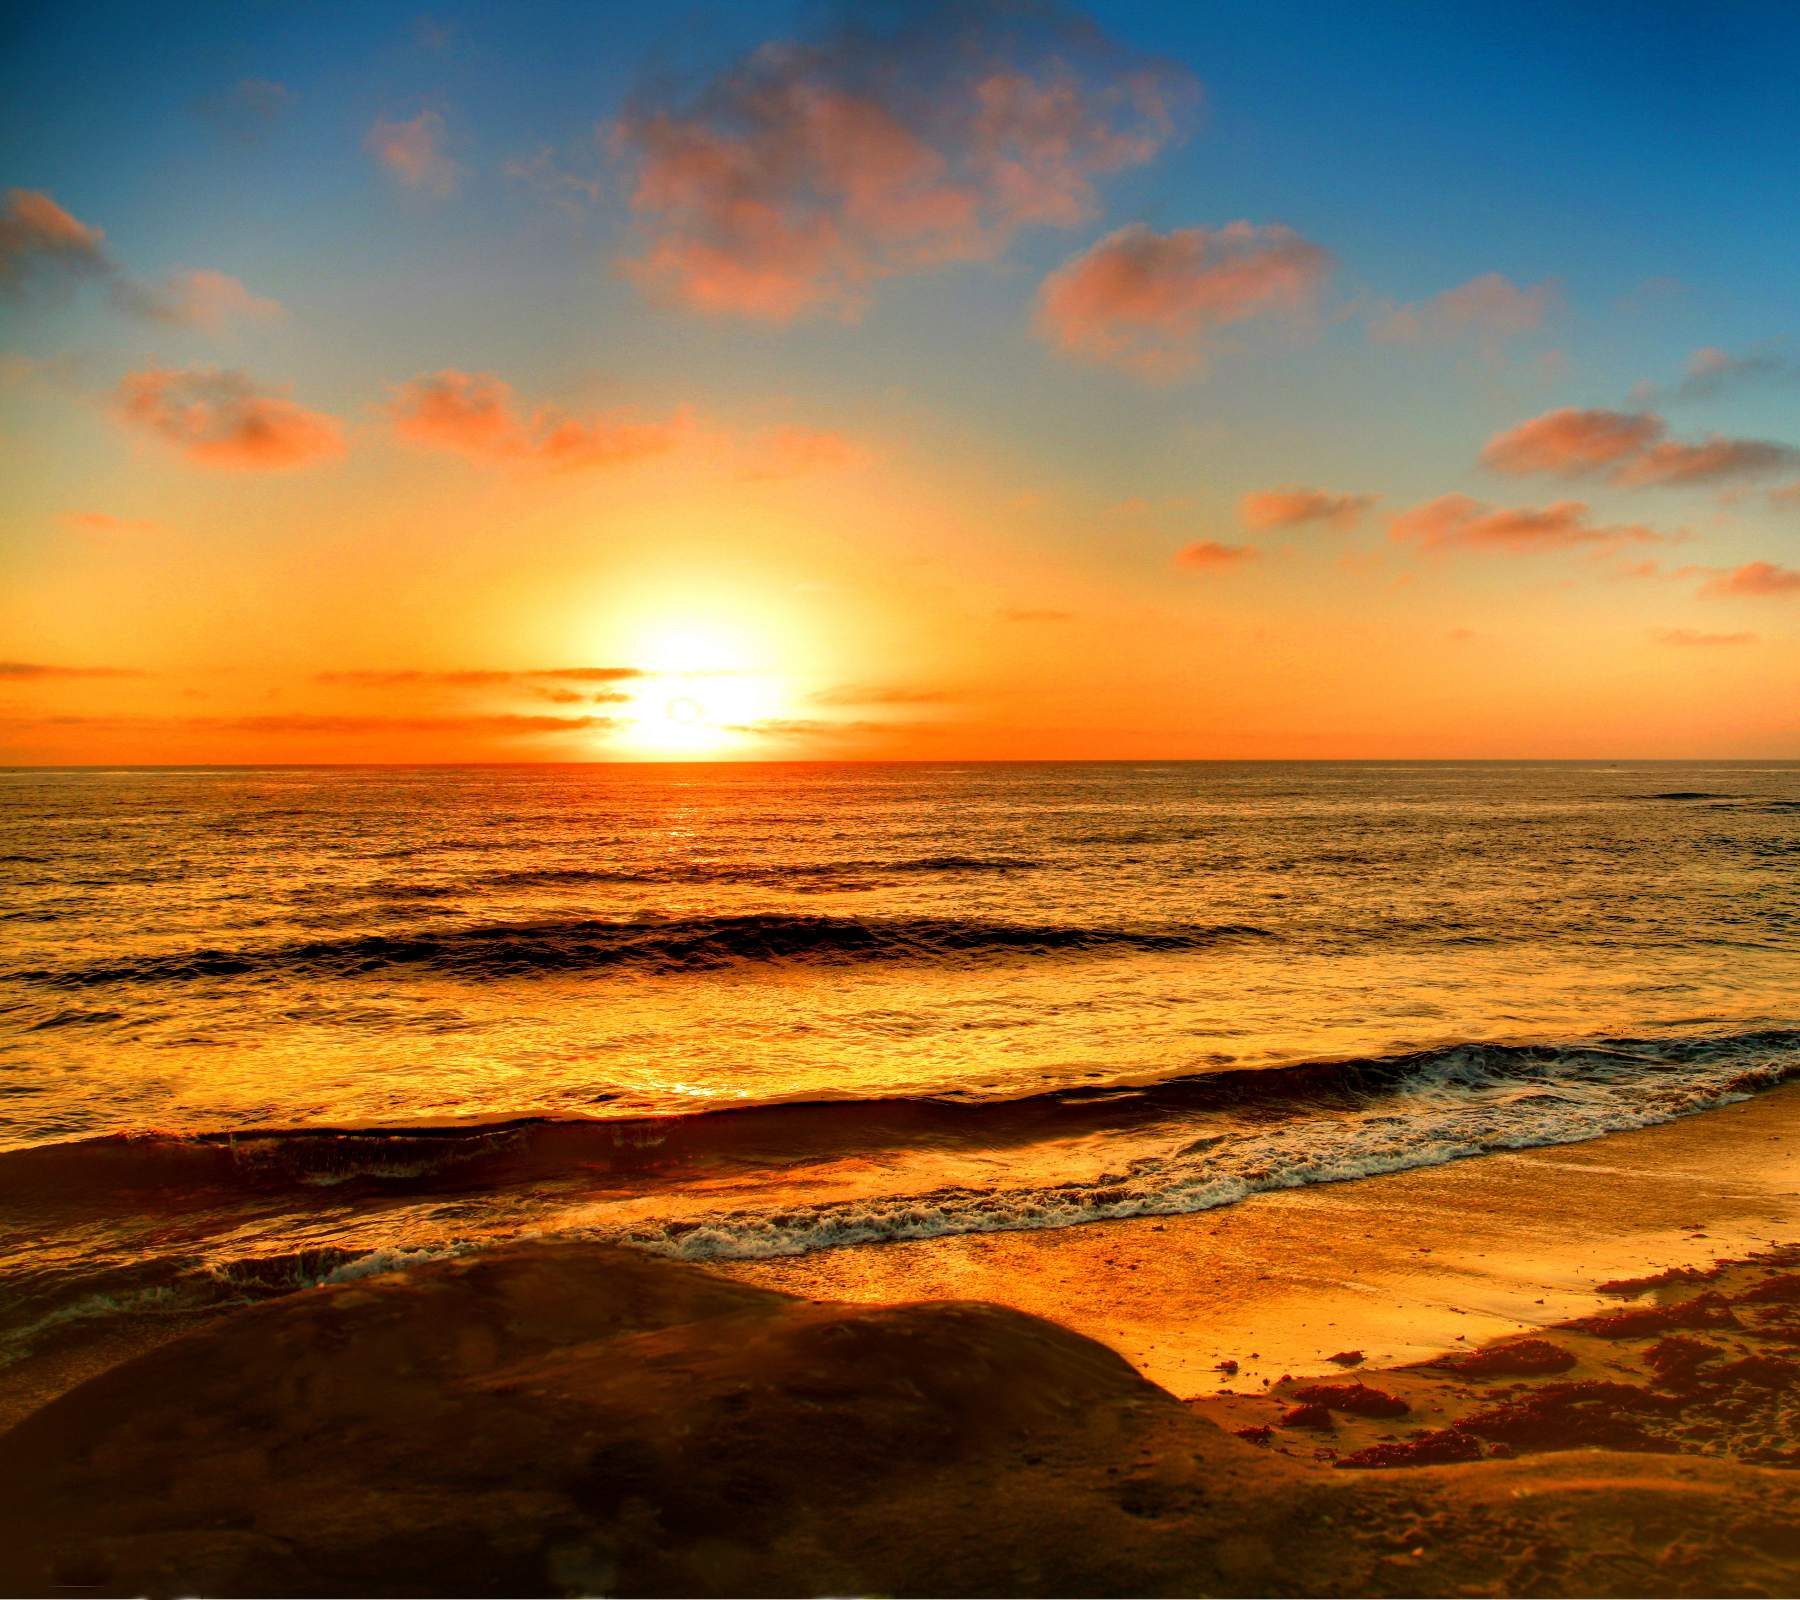 Sunset Backgrounds and Codes for Twitter Friendster Xanga or 1800x1600